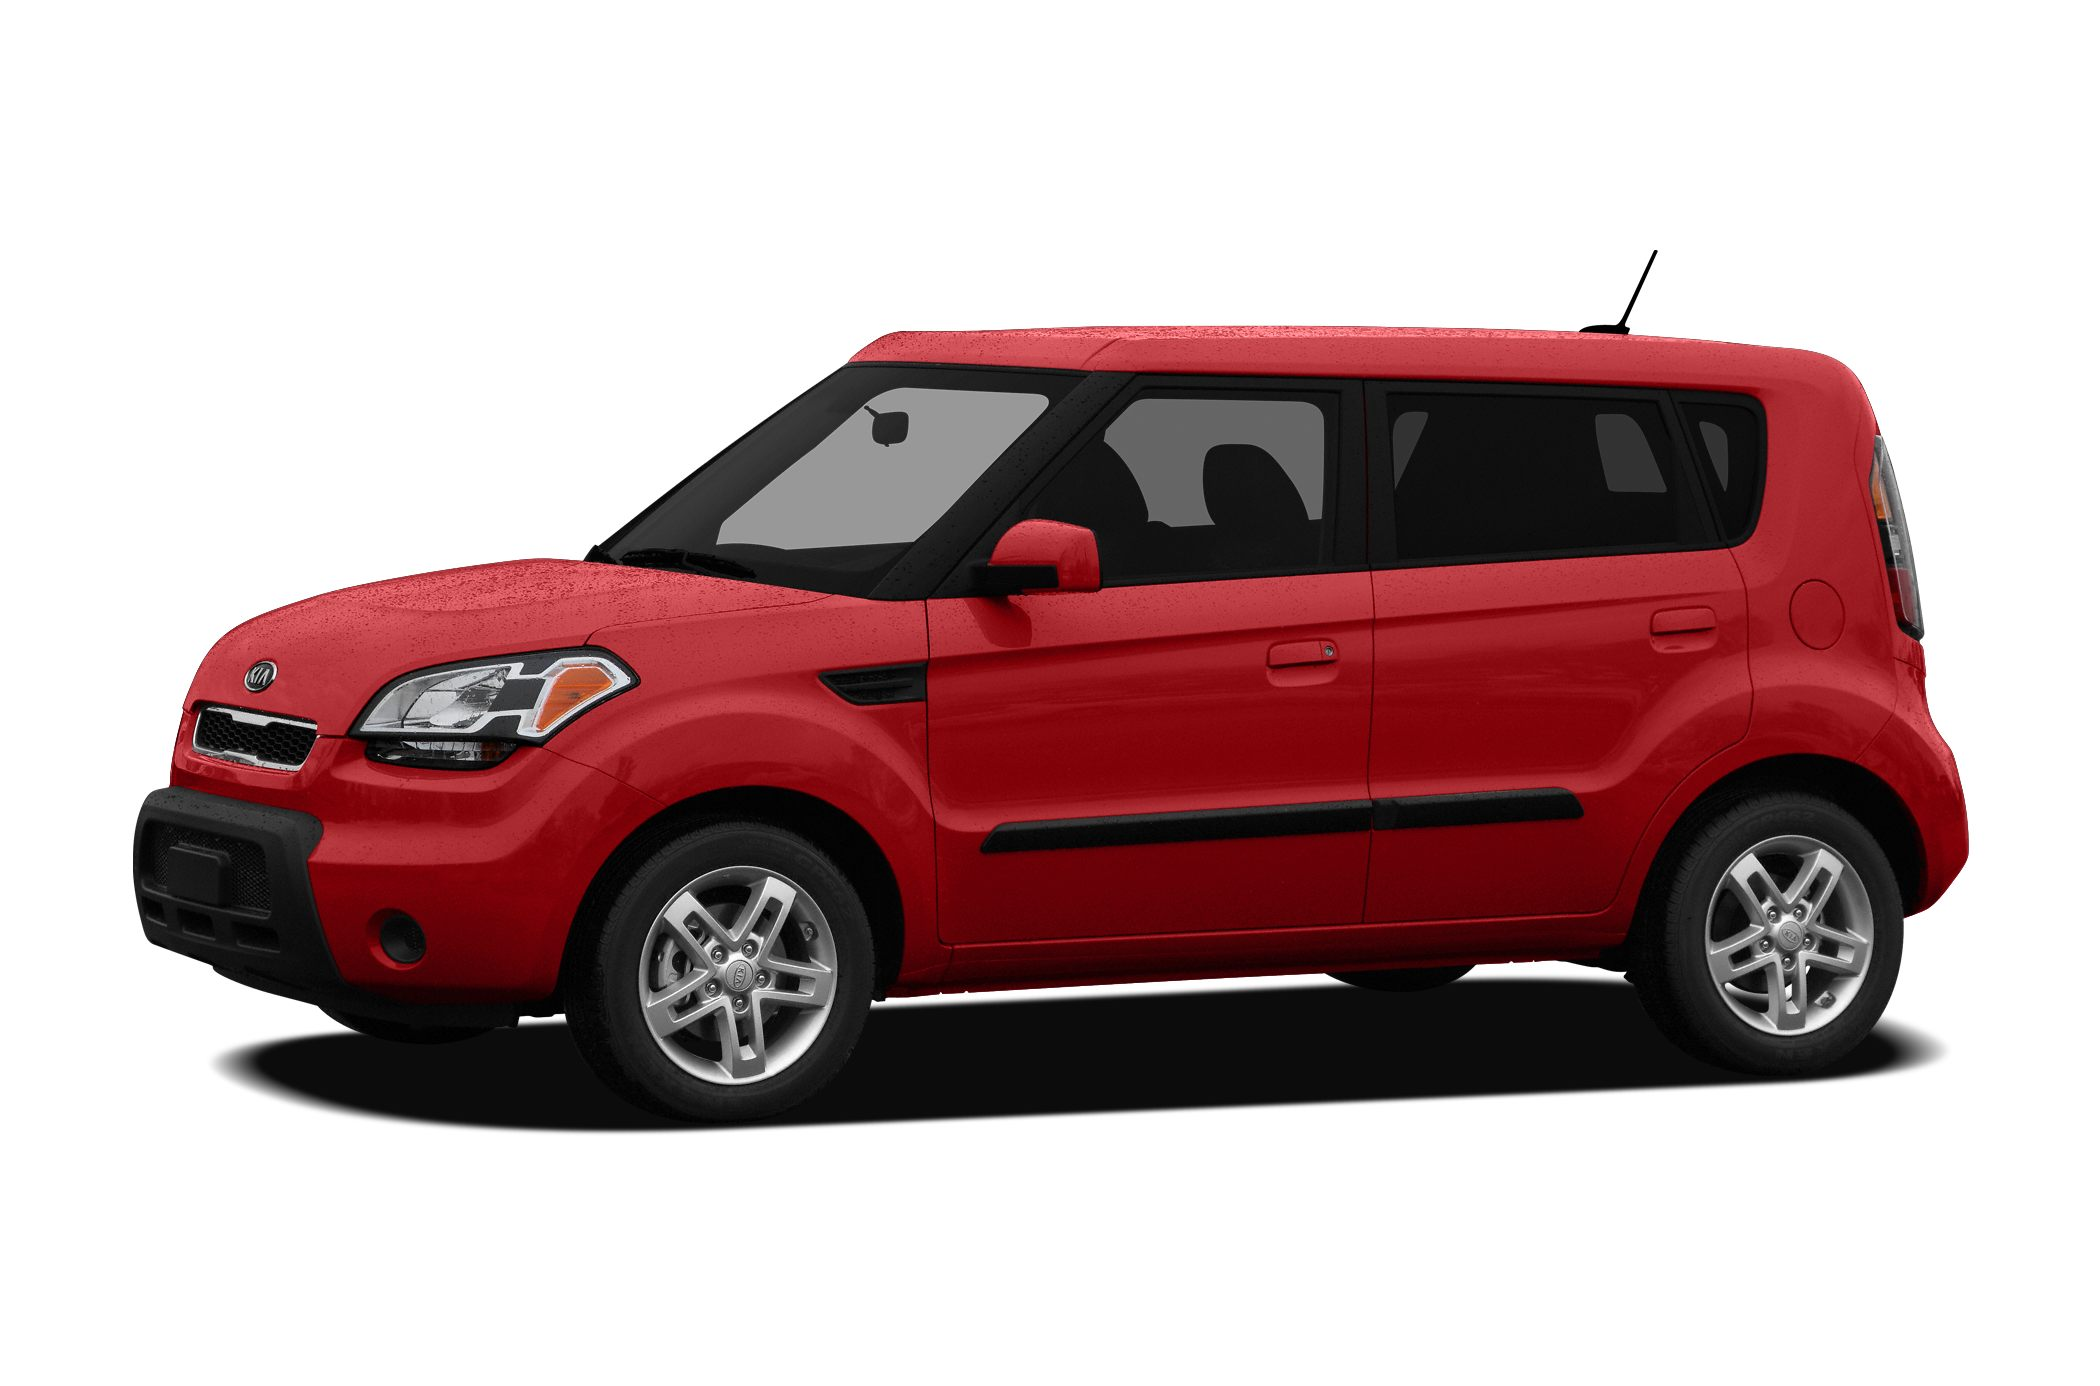 2011 Kia Soul Base 4D Hatchback 16L 4-Cylinder CVVT 5-Speed Manual with Overdrive and FWD 5sp